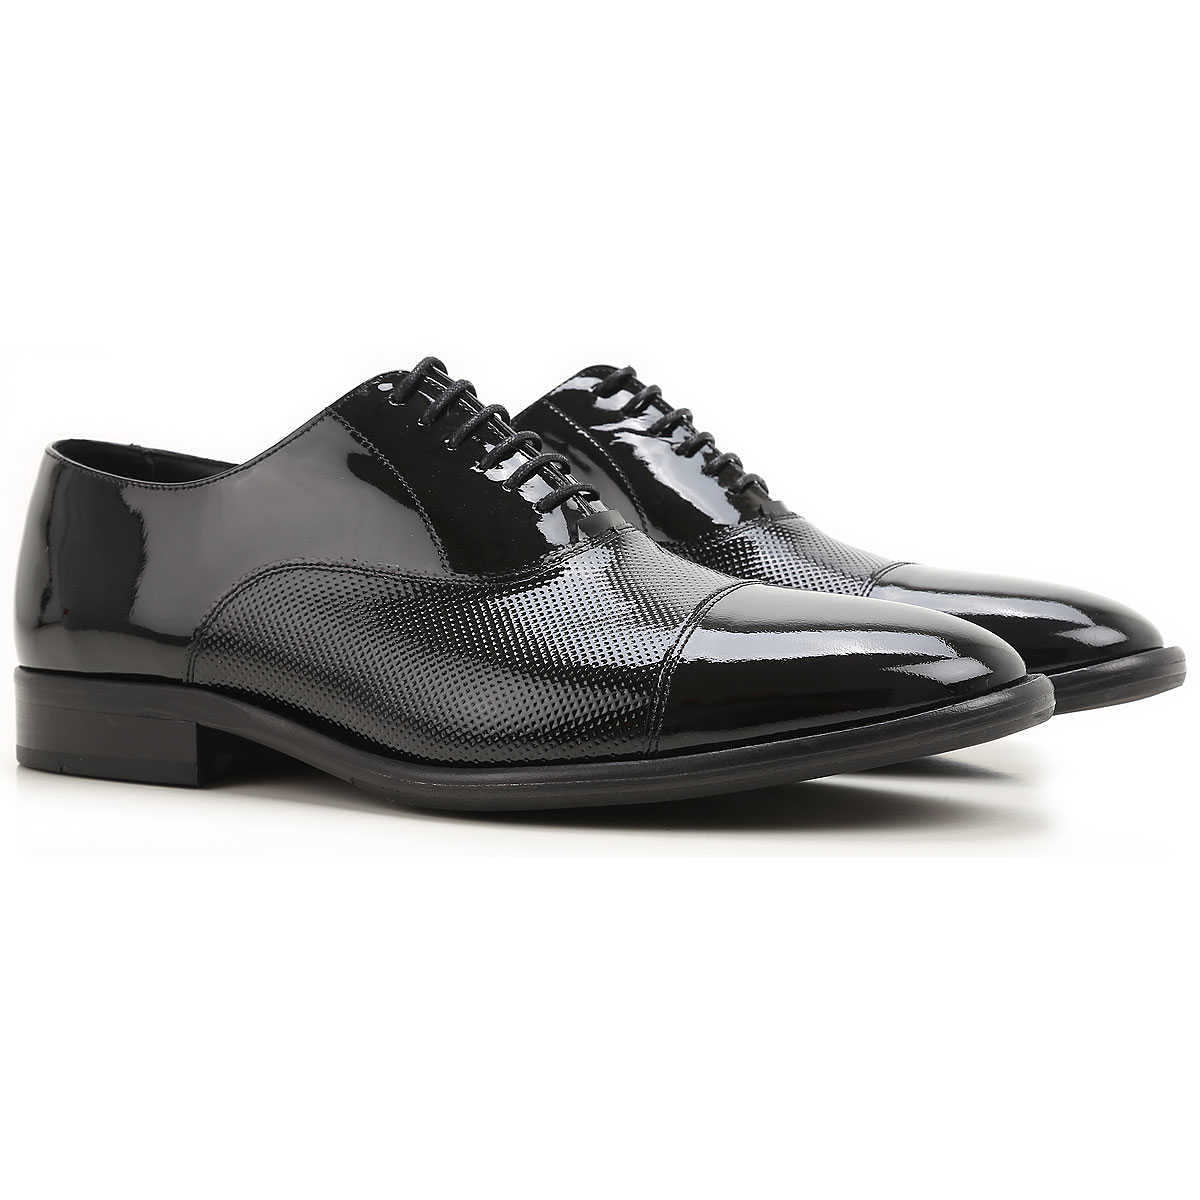 Emporio Armani Lace Up Shoes for Men Oxfords